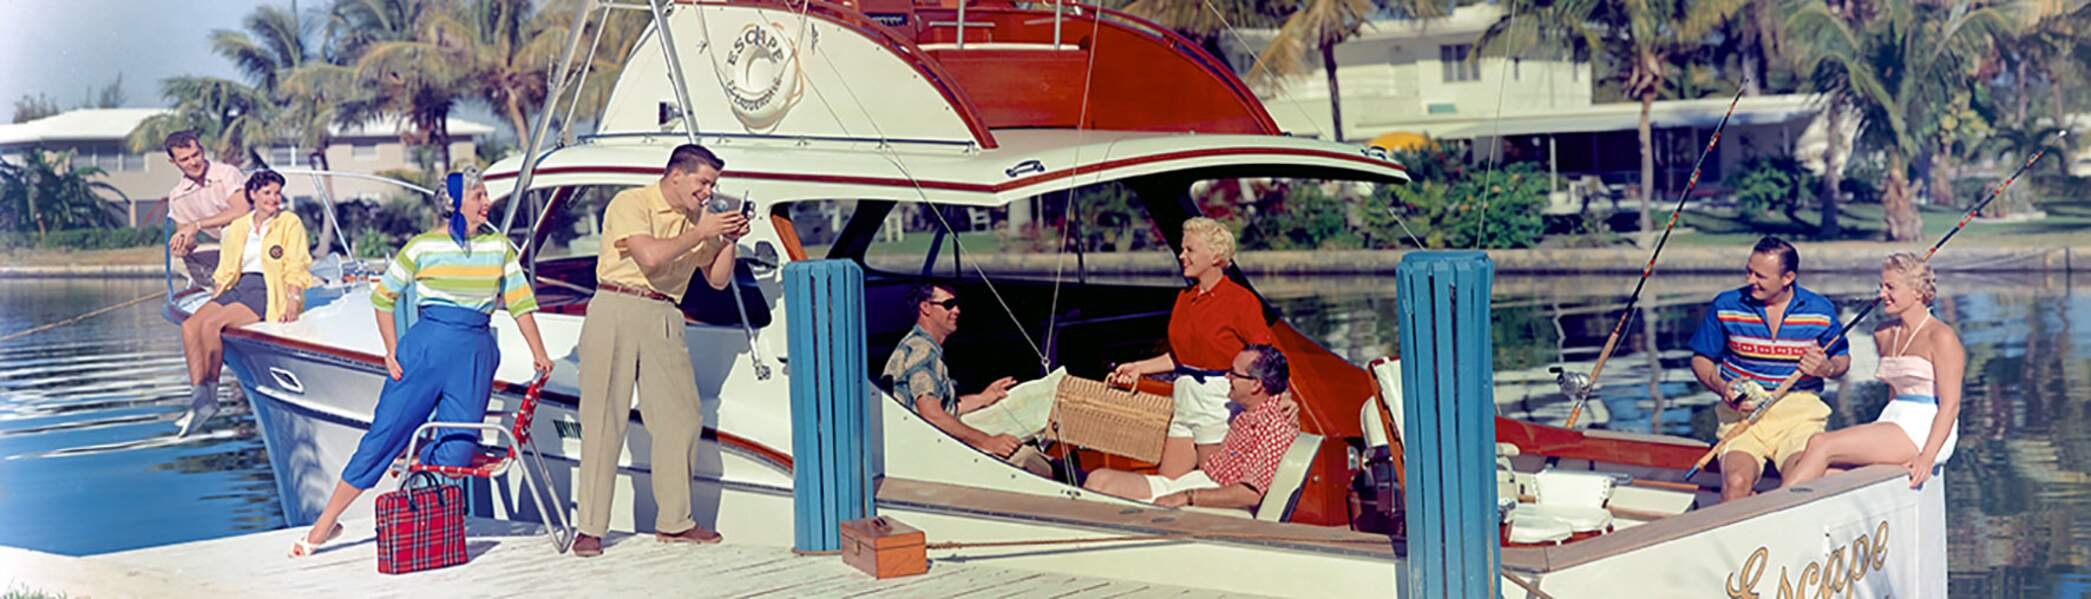 Boat Party Florida, 1957